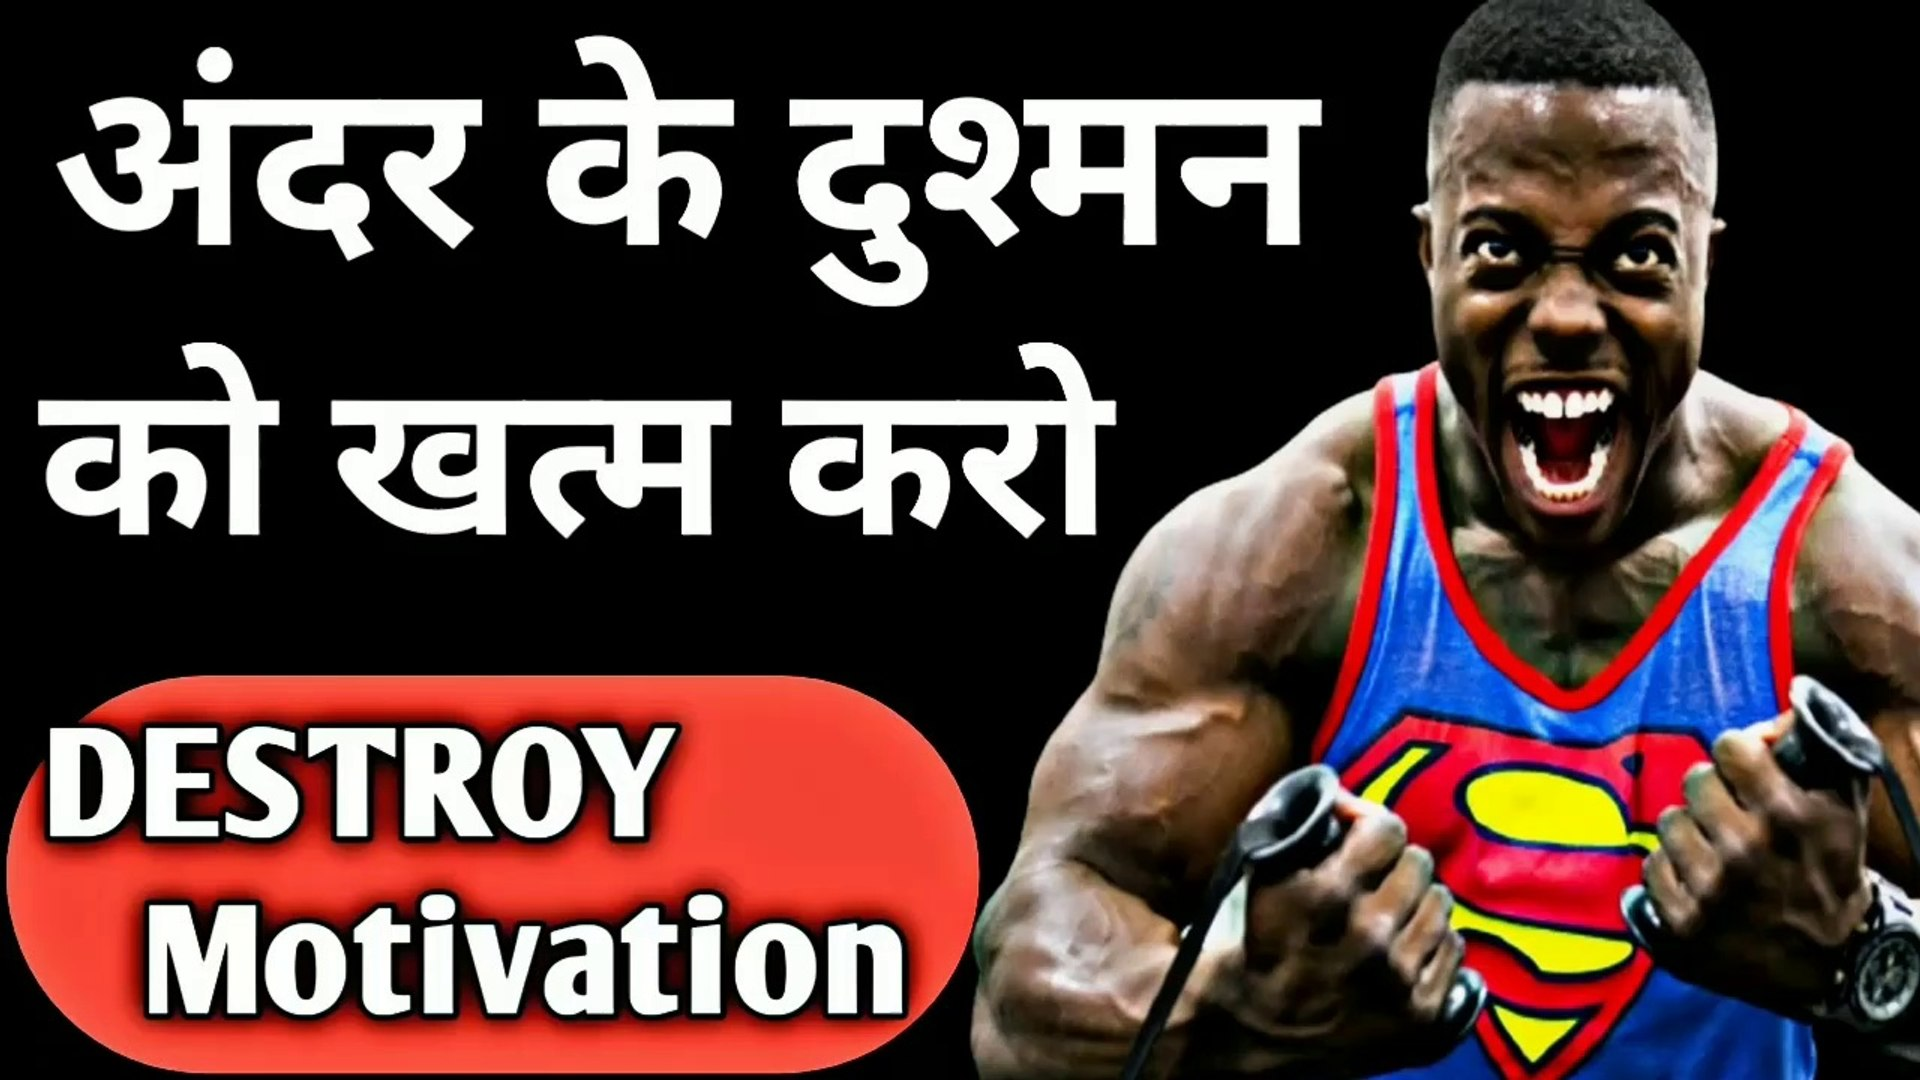 Enemy Motivational Video | Hindi Motivational Video And Speech by Willingness power